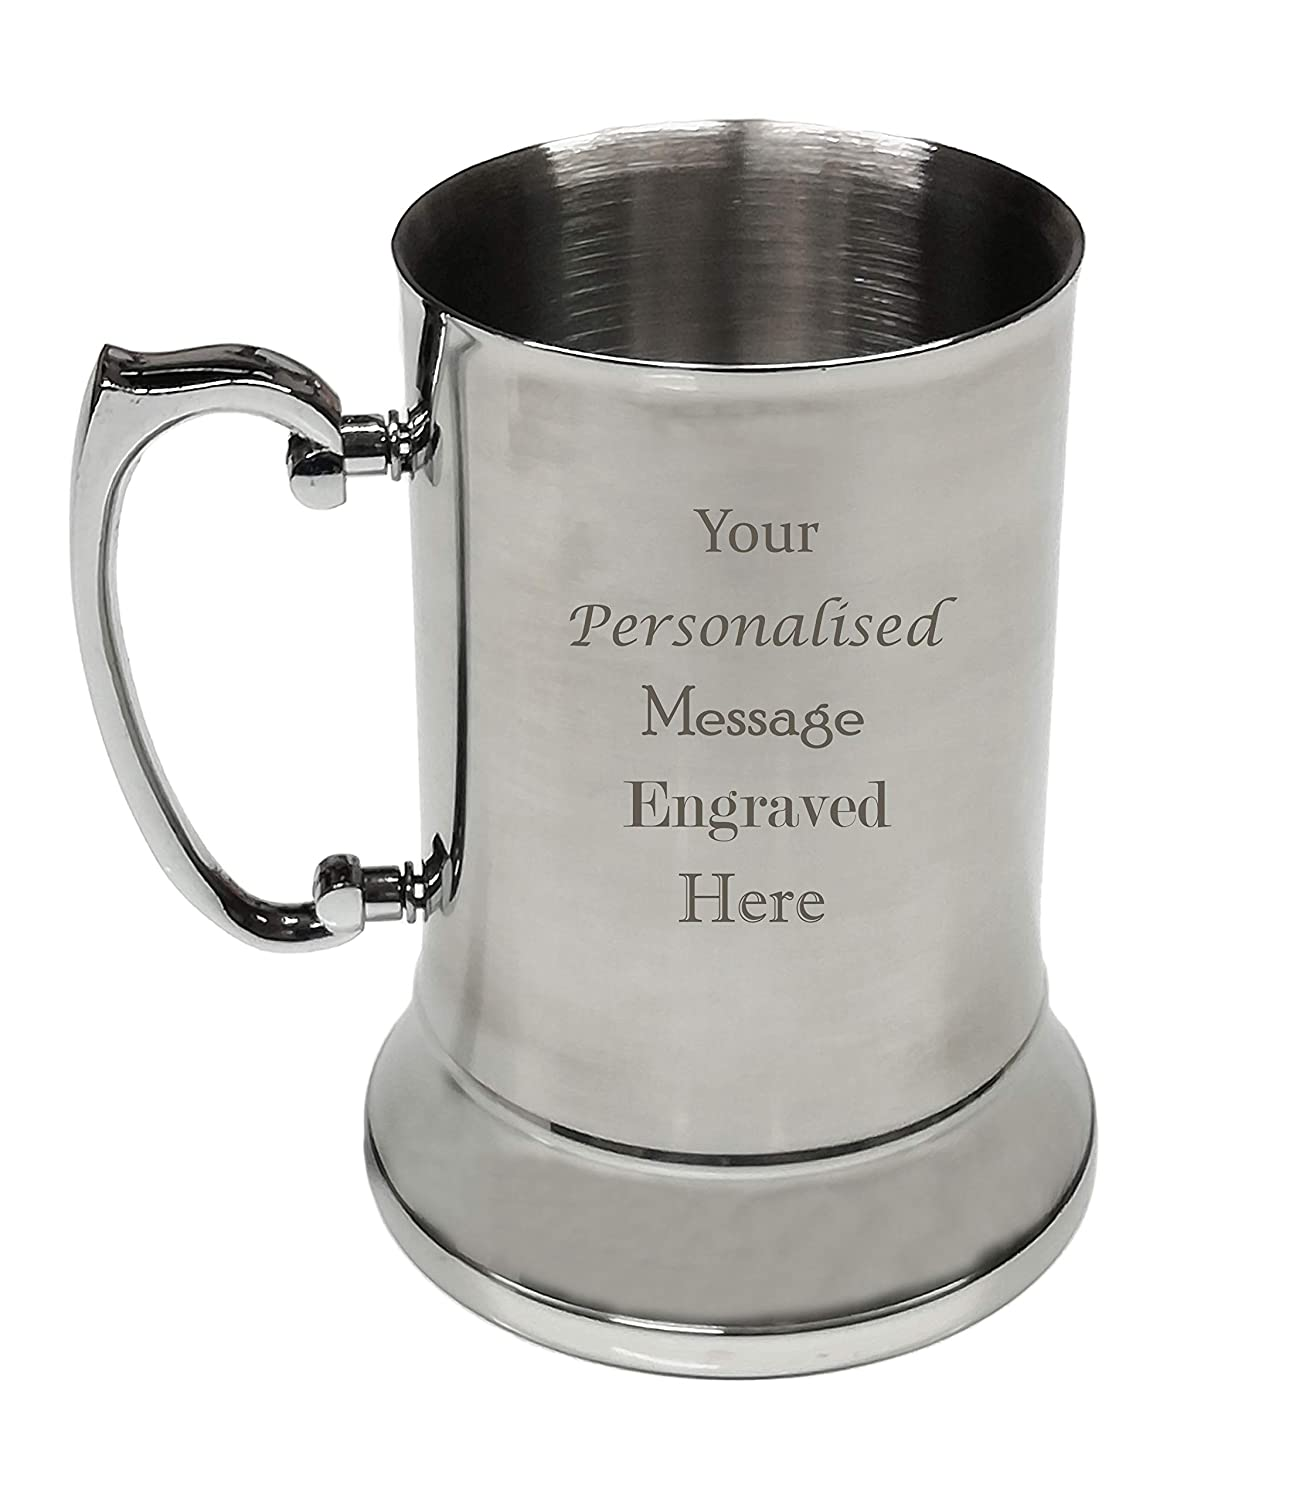 Personalised Engraved Stainless Steel Tankards Steins Beer Mugs Gifts for Men (Basic Text Design)